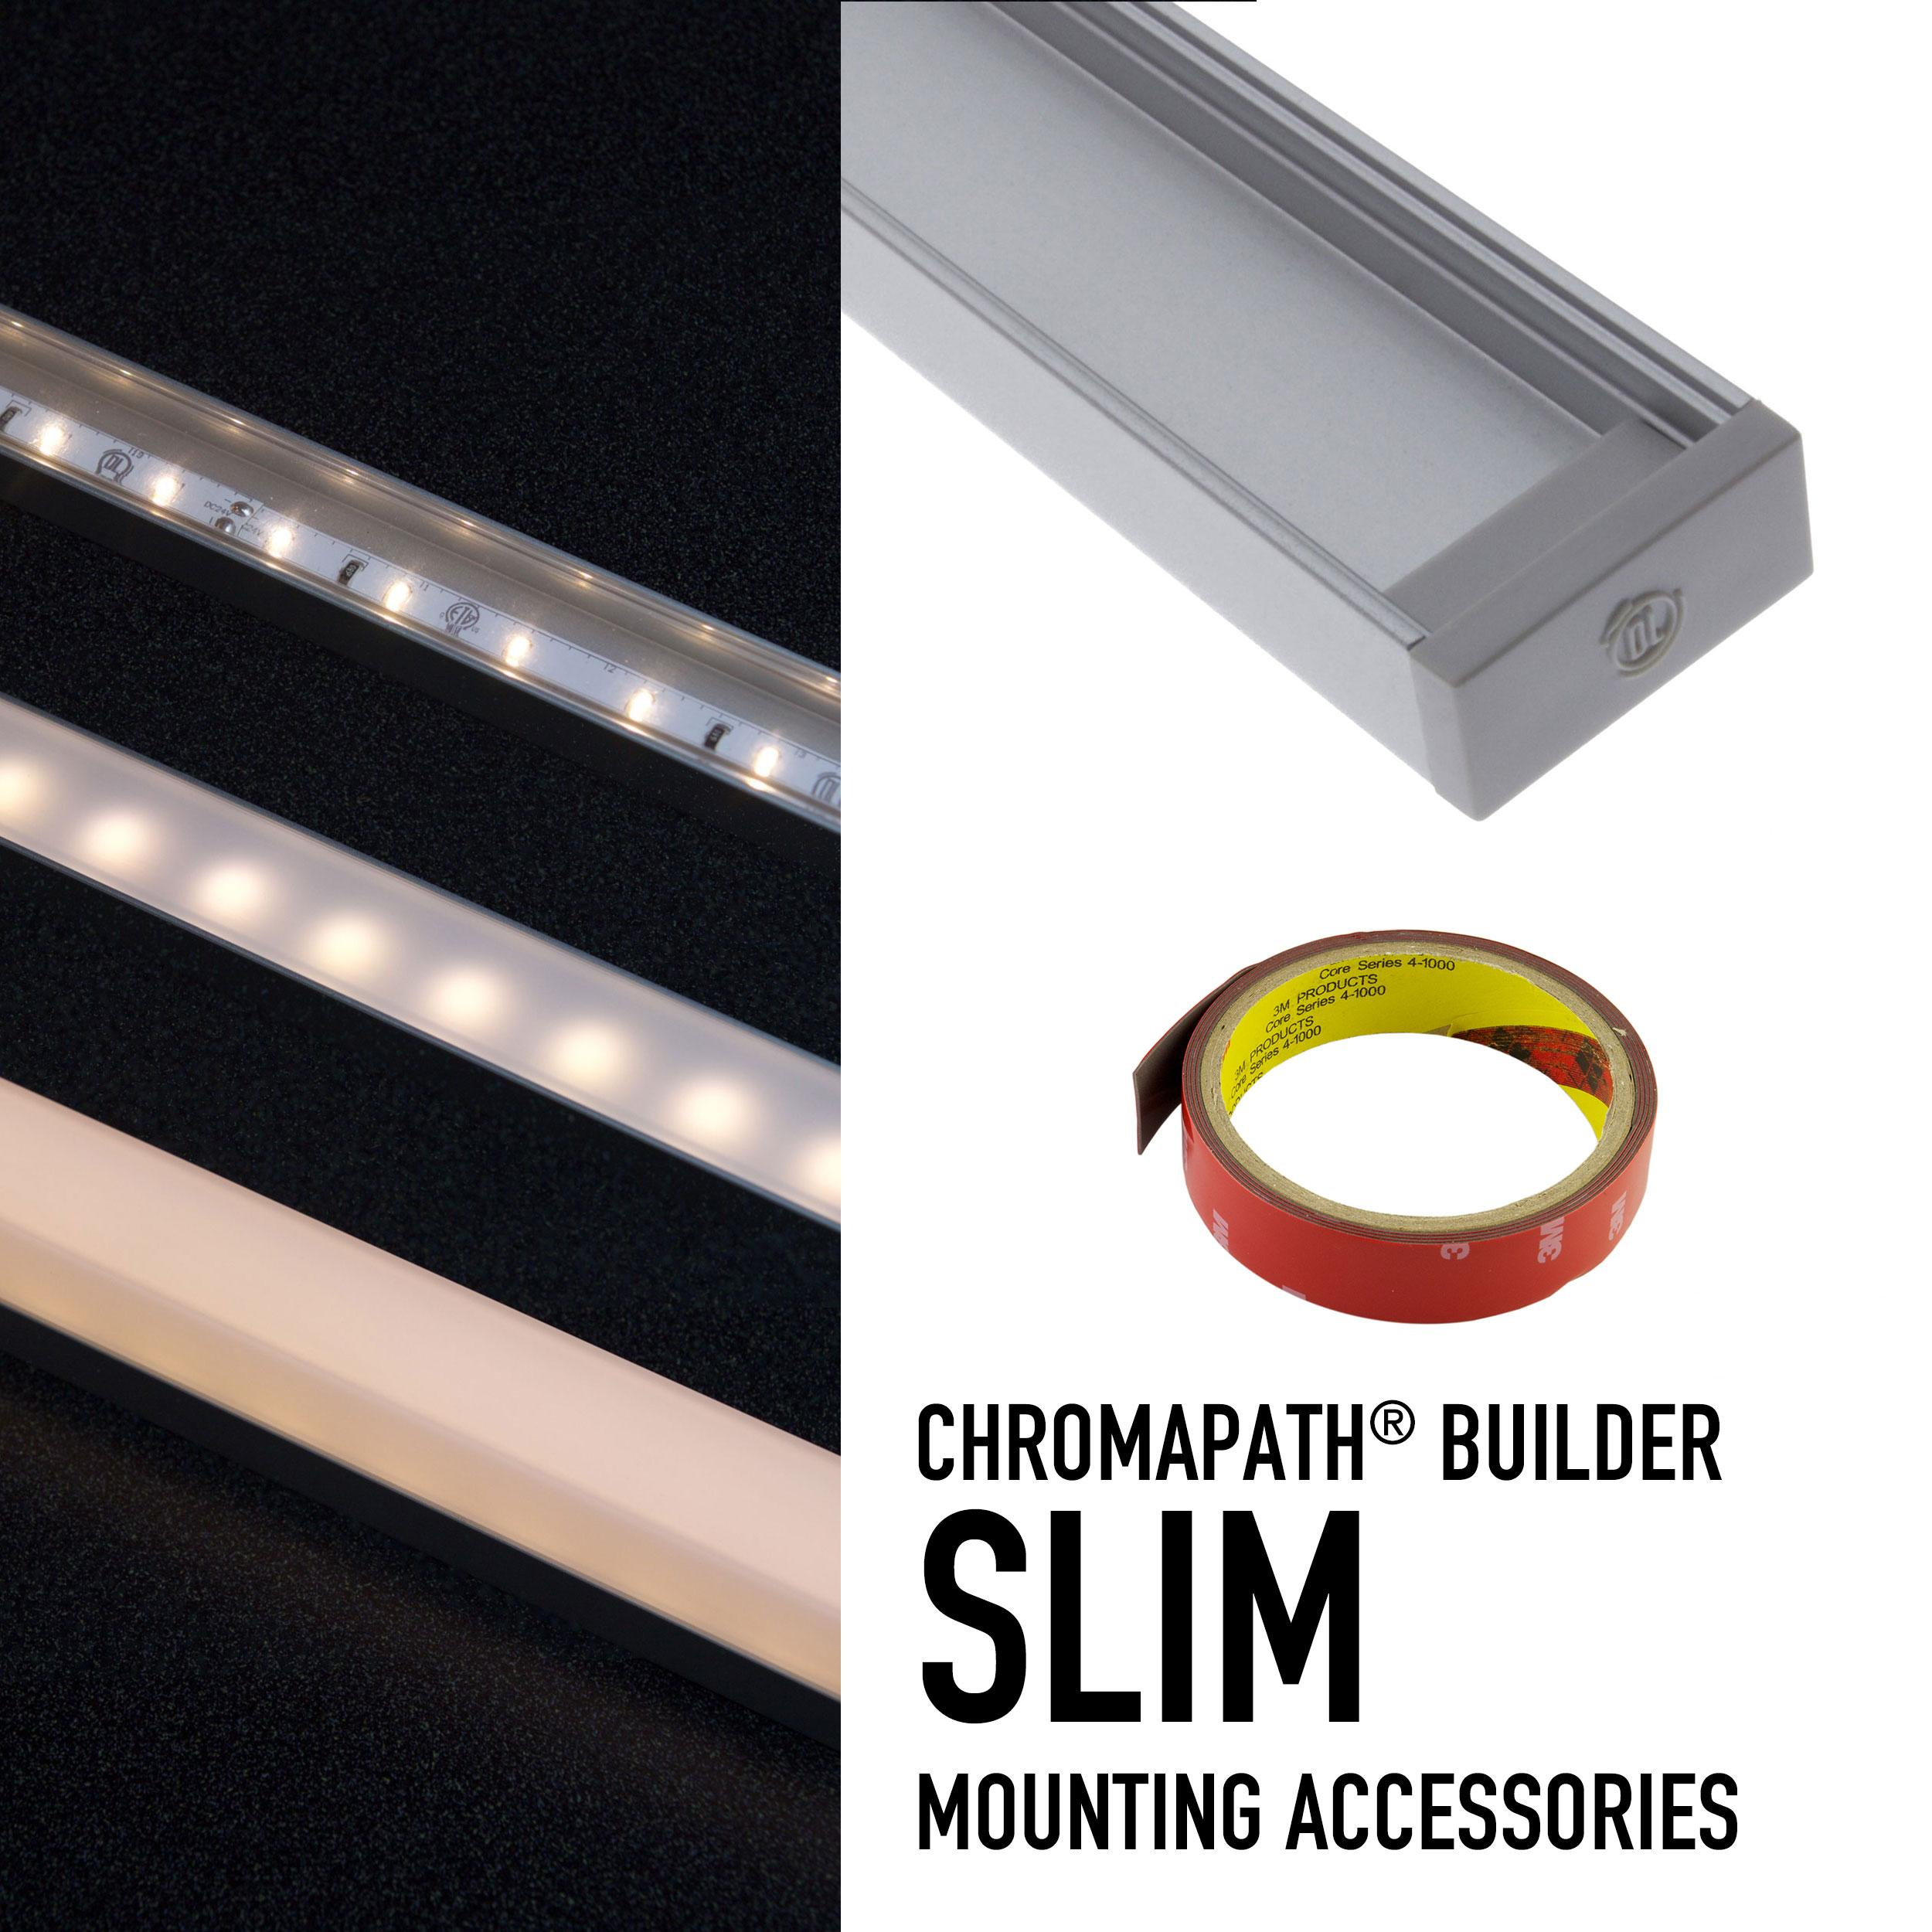 CHROMAPATH® Builder Channel Accessories - SLIM